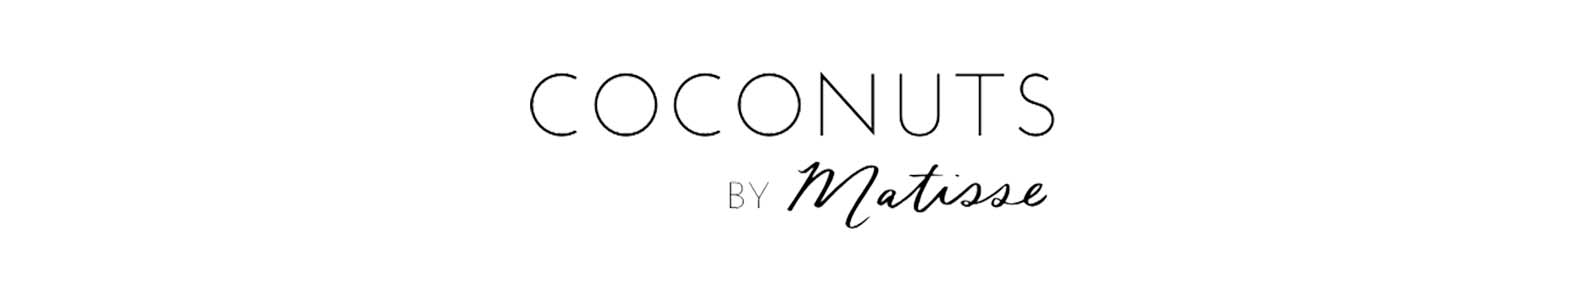 Coconuts by Matisse brand header image